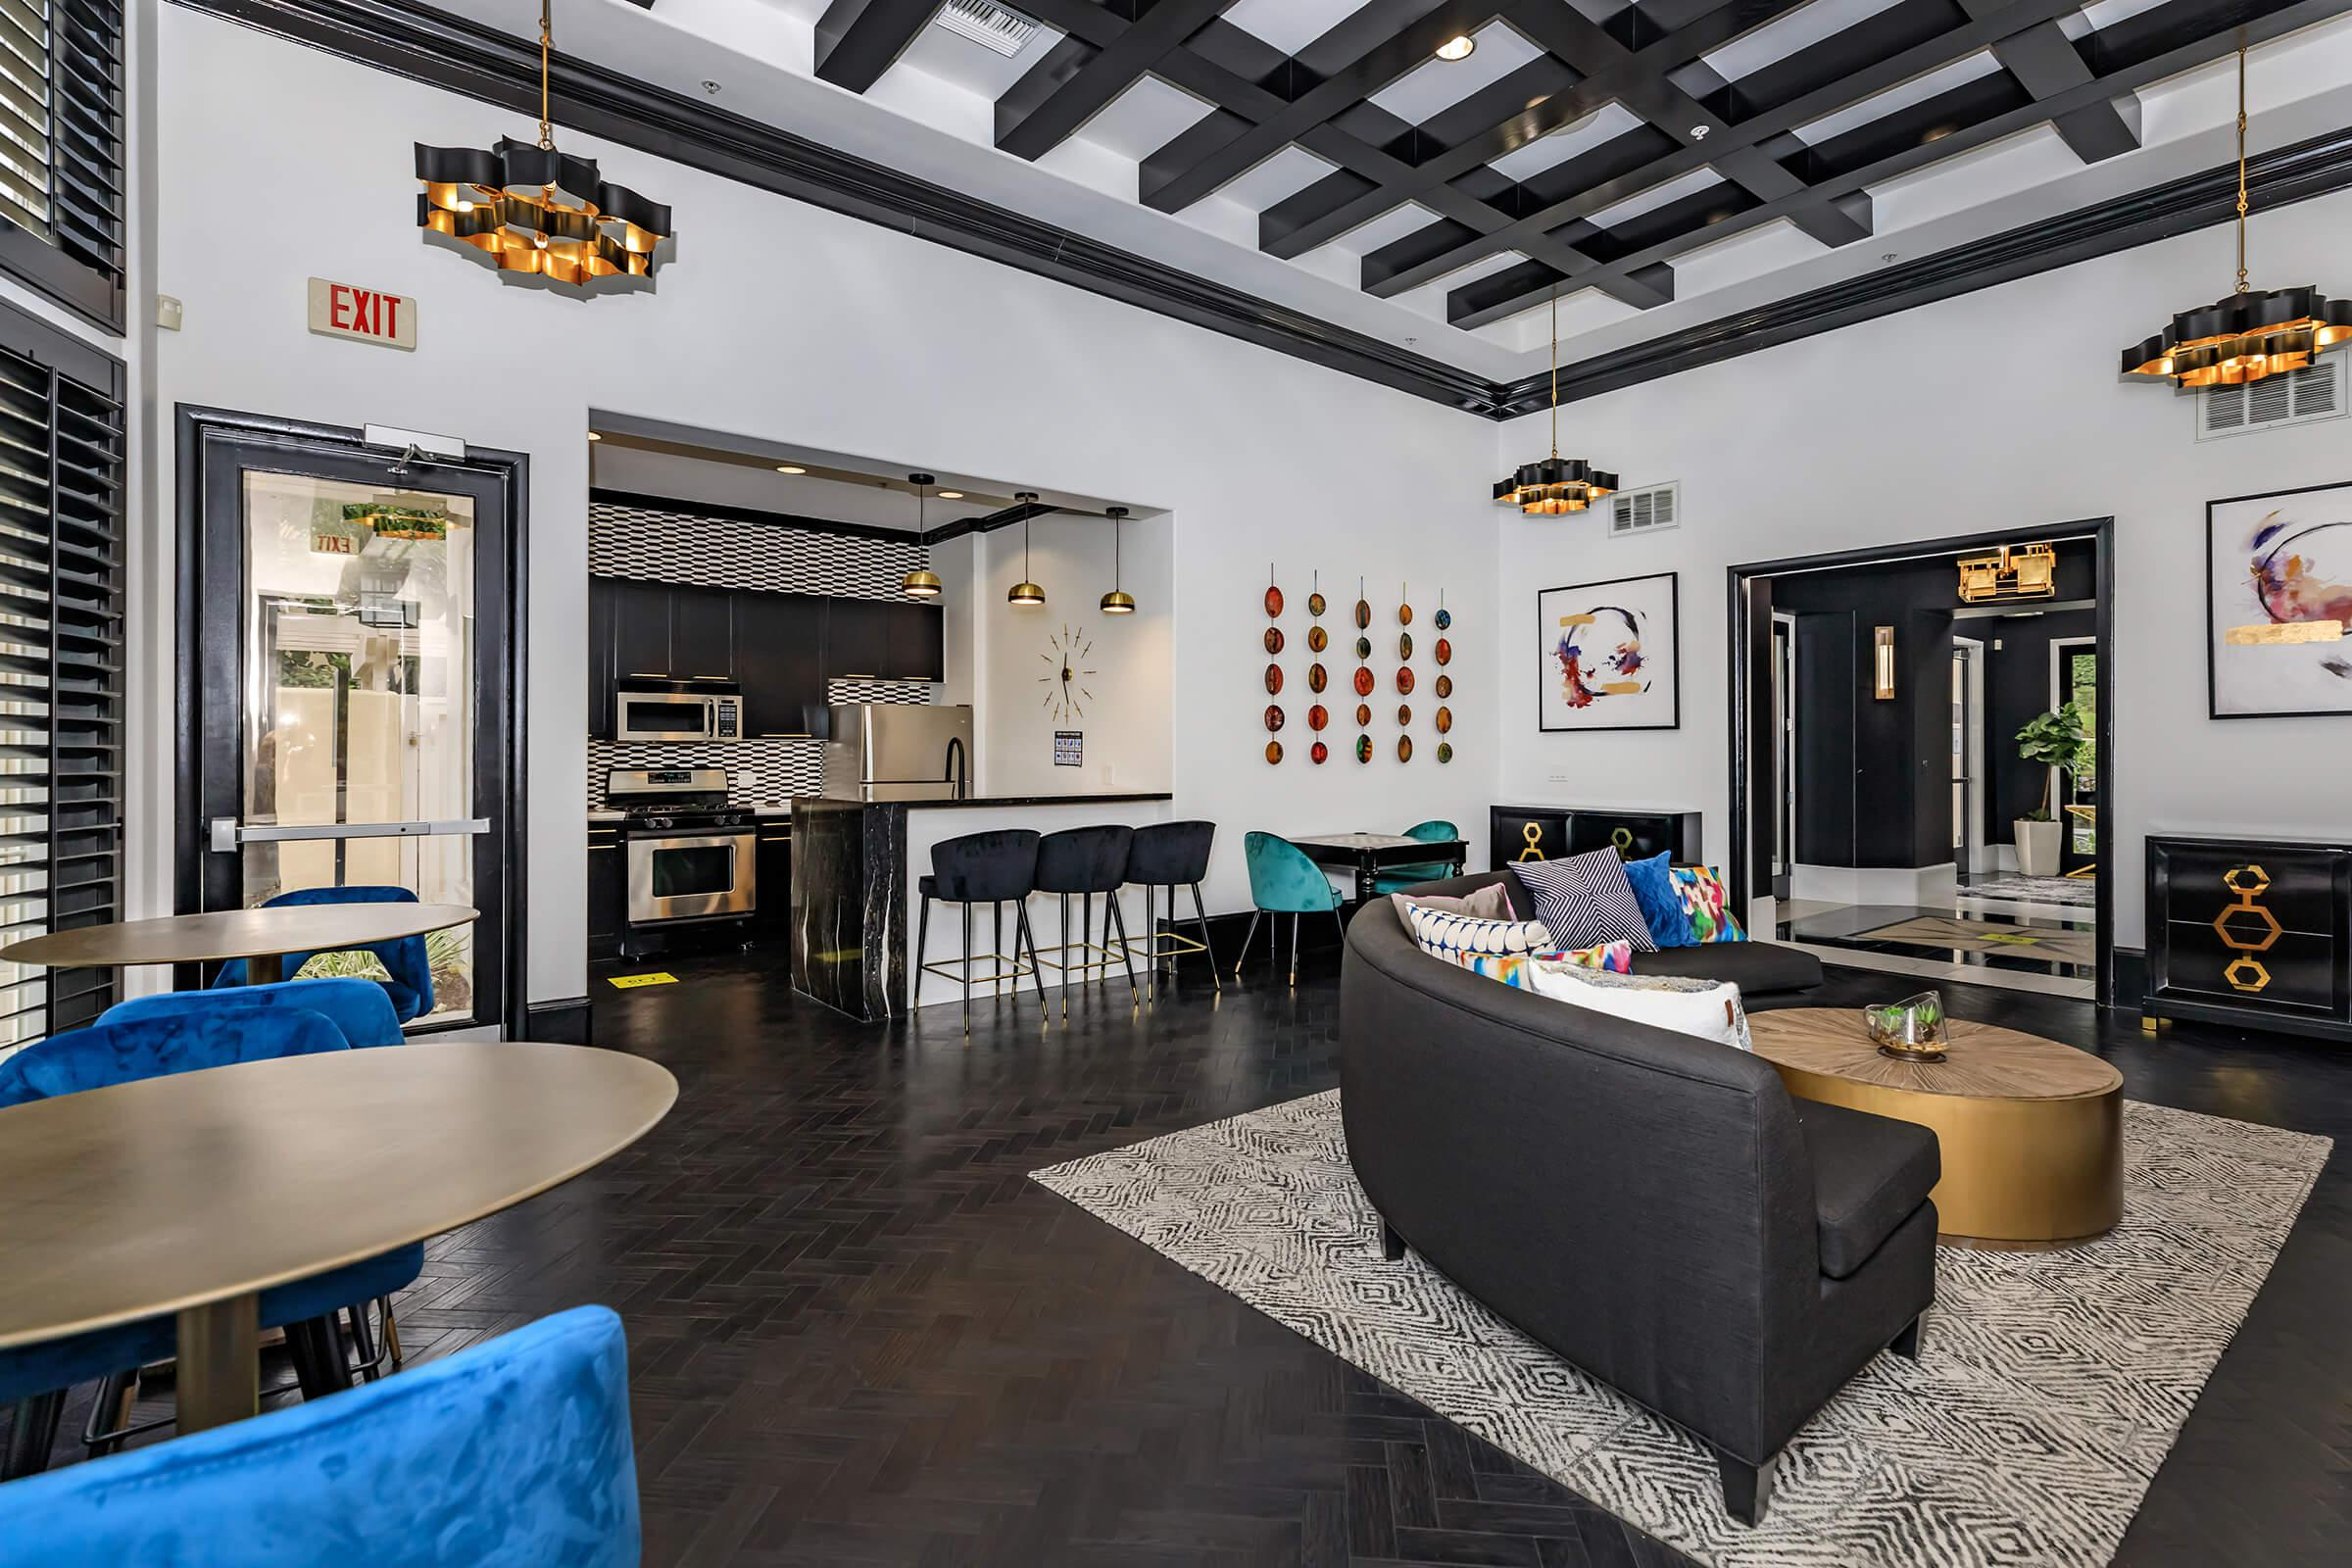 Community room with black couches